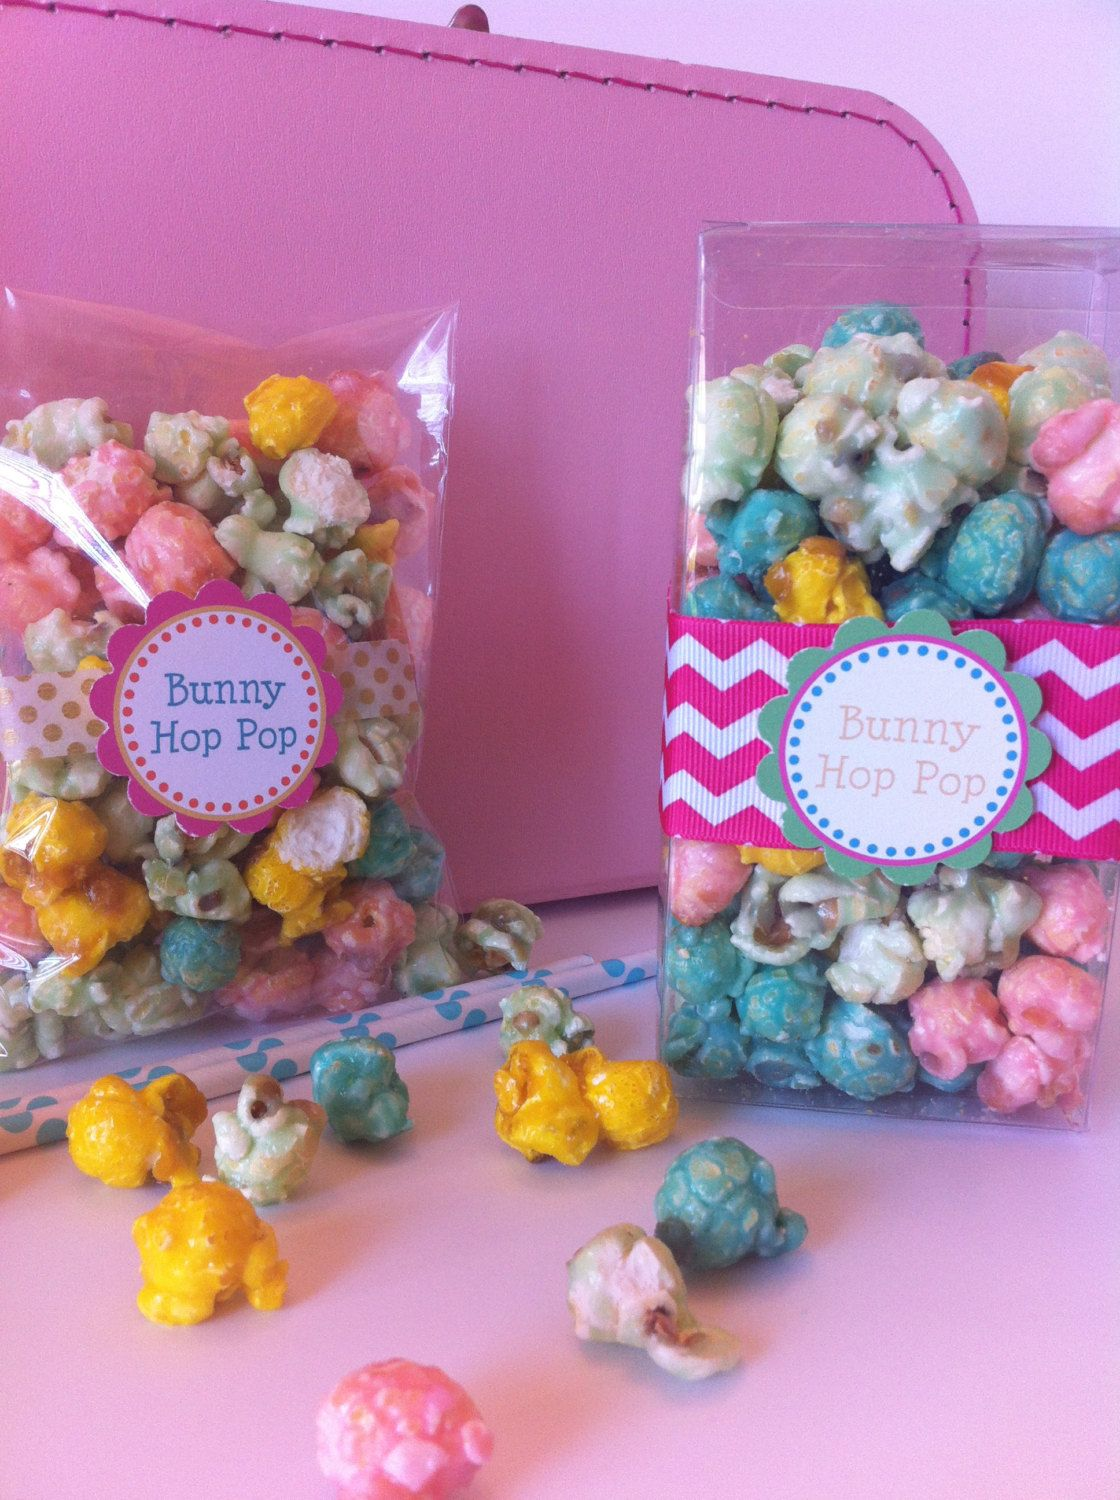 Bunny hop pop easter popcorn goodie box by ohgoodiedesigns eggs bunny hop pop easter popcorn goodie box by ohgoodiedesigns negle Gallery